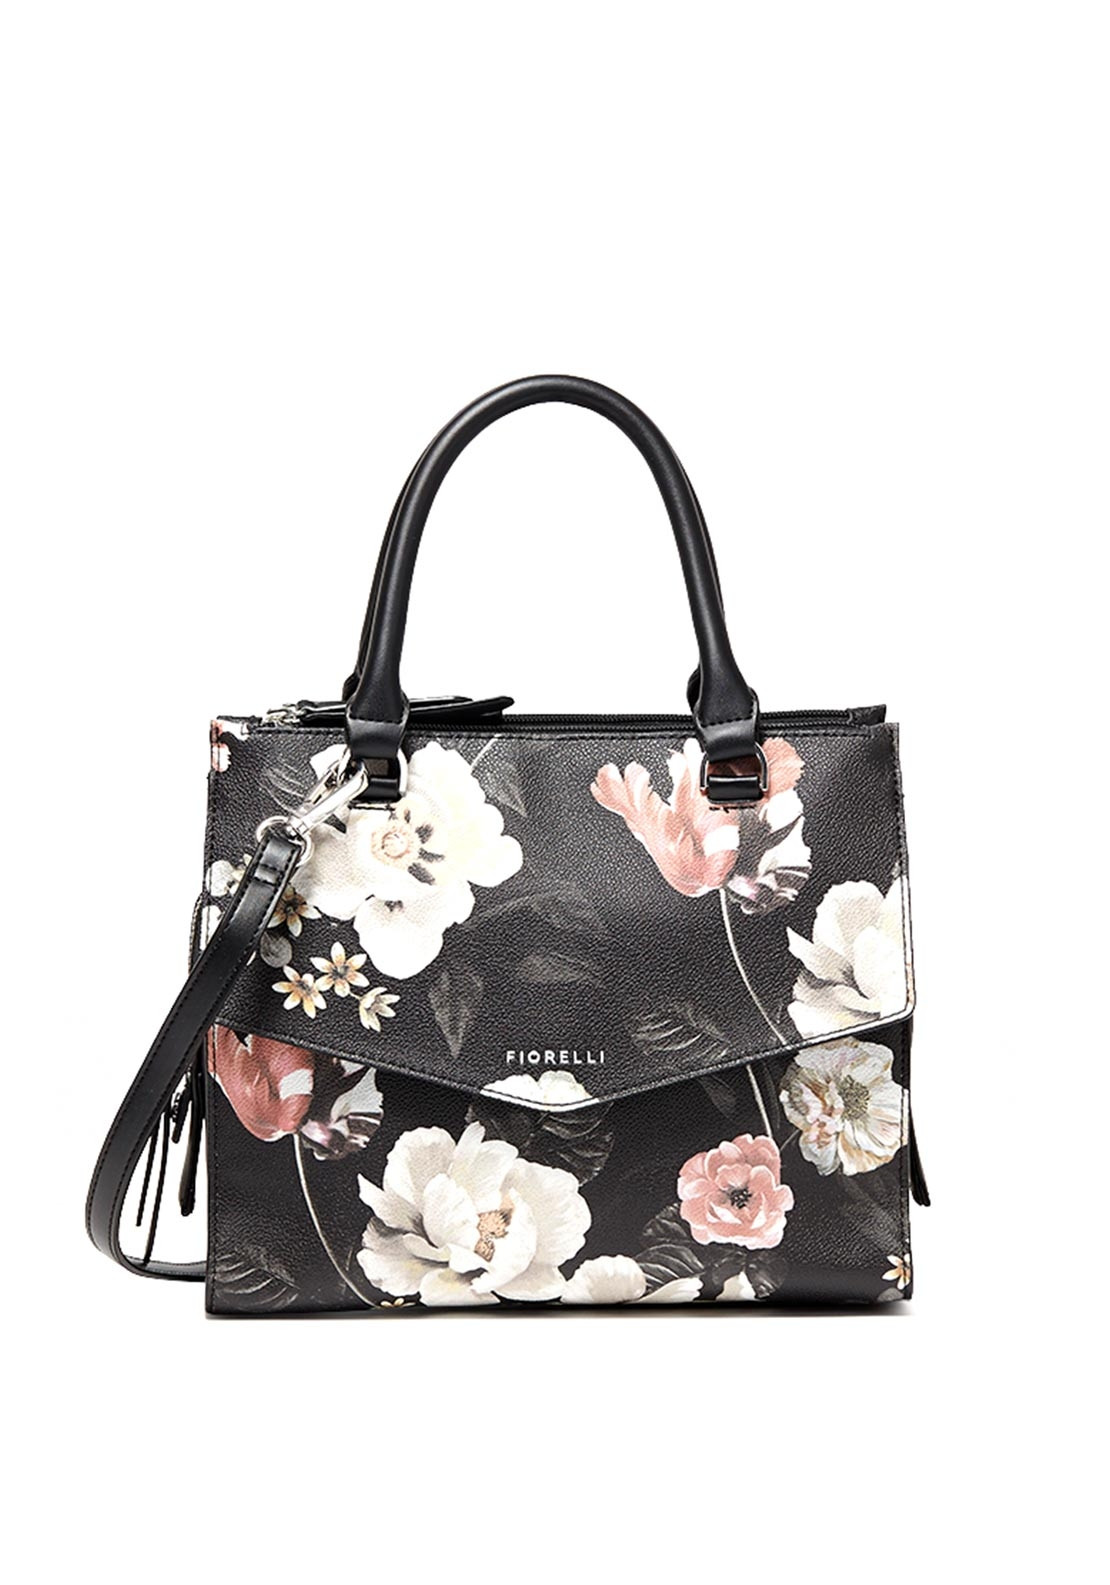 90afdbaf74d Fiorelli Mia Finsburyblk Grab Bag, Black. Be the first to review this  product. Fiorelli Mia Finsburyblk Grab Bag ...